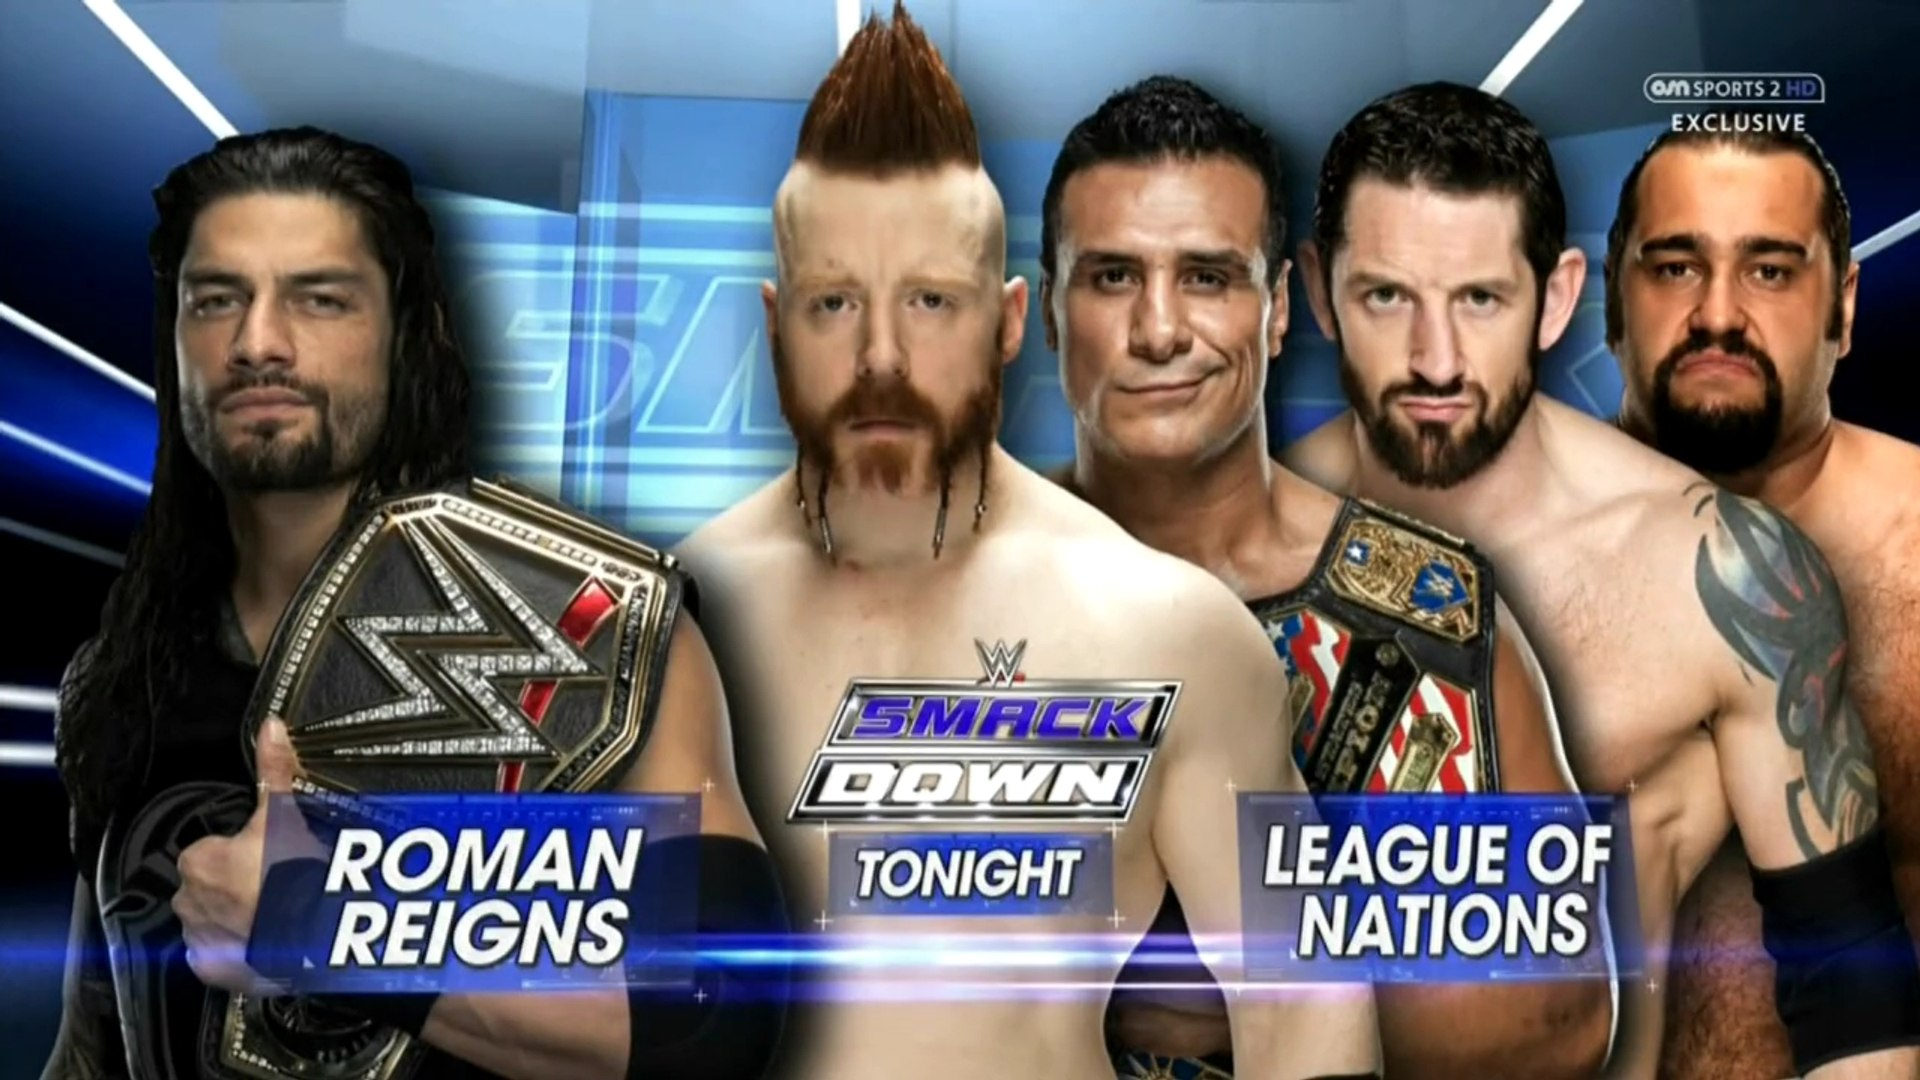 Roman Reigns Vs The League Of Nations 4 On 1 Handicap Match Smackdown Latino ᴴᴰ Video Dailymotion